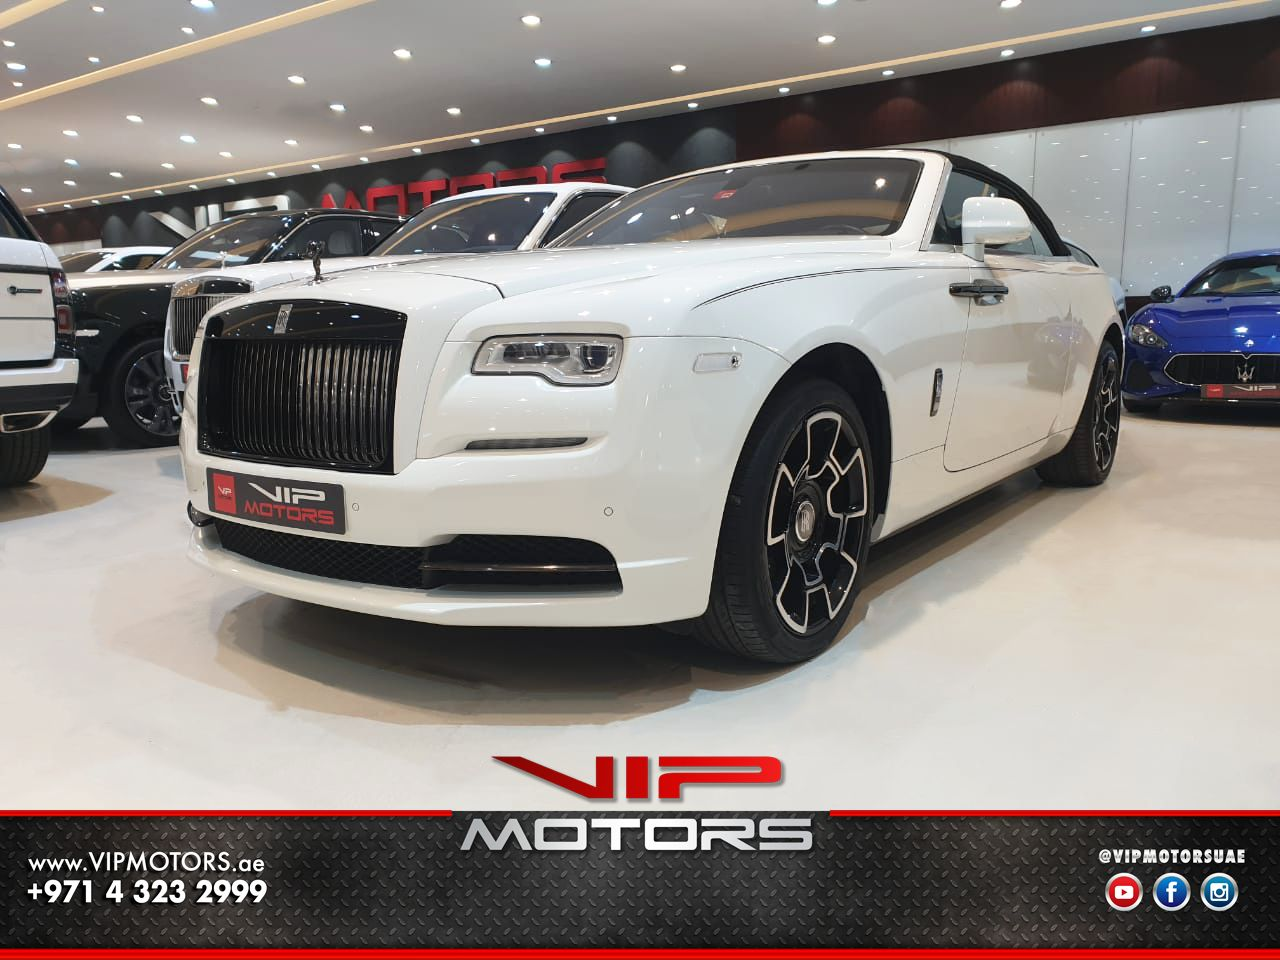 Rolls-Royce-Dawn-White-2017-Front-Side-View-Vip-Motors